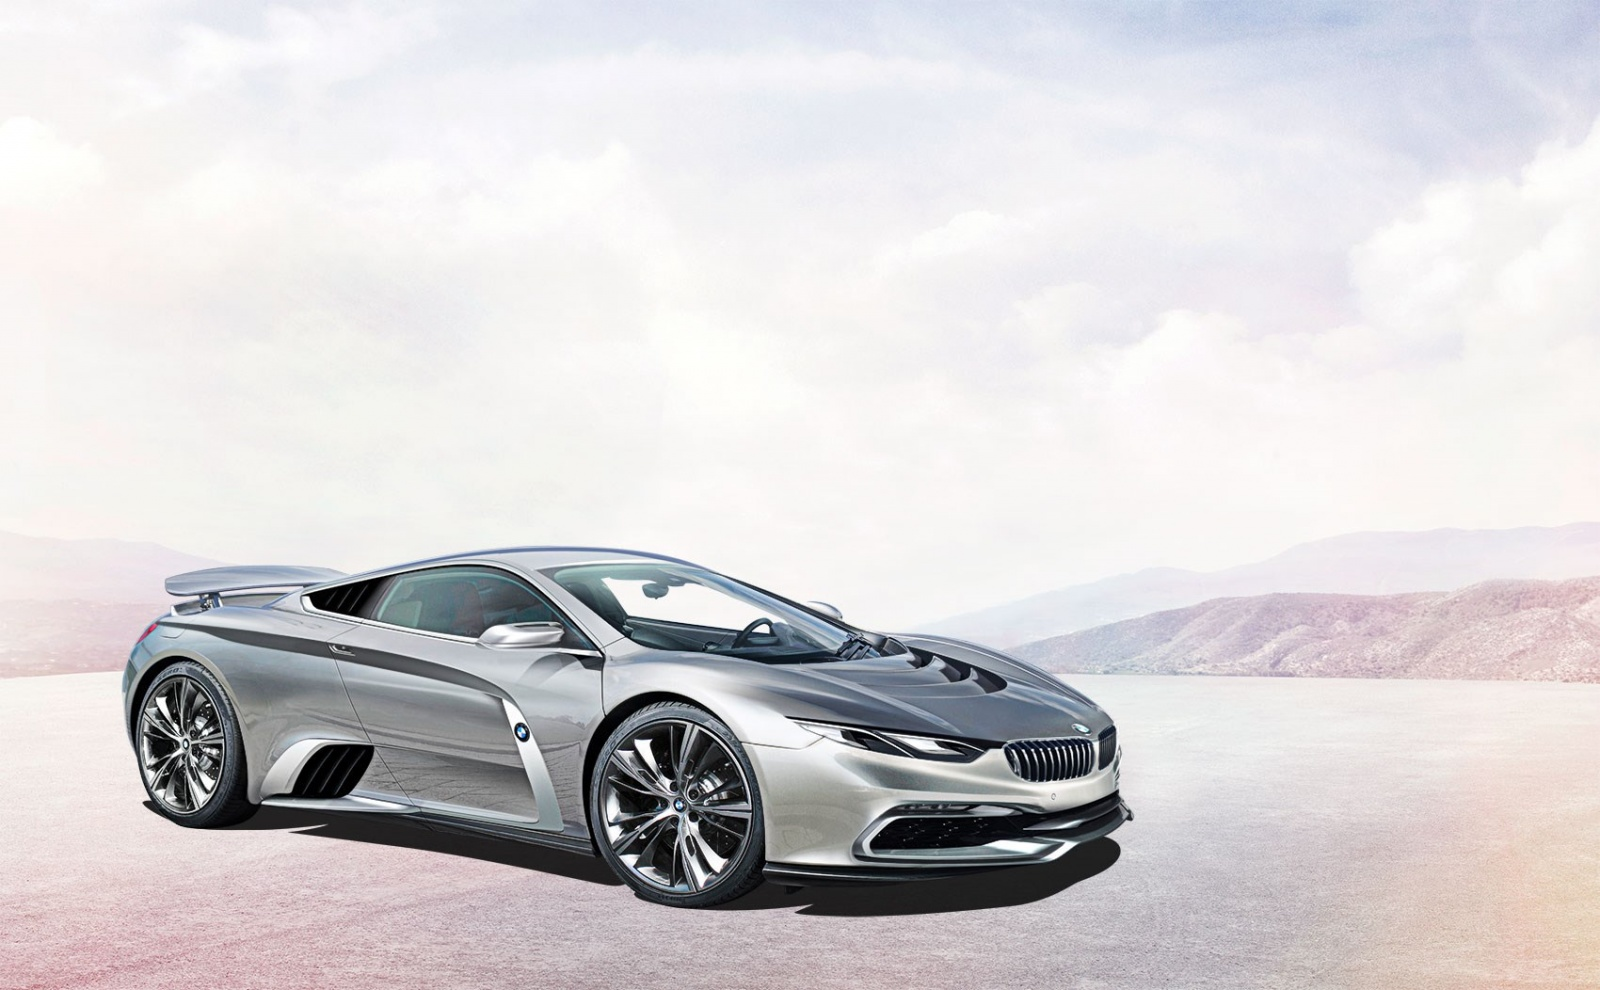 rumor-claims-that-bmw-and-mclaren-are-working-on-a-new-supercar-100065_1